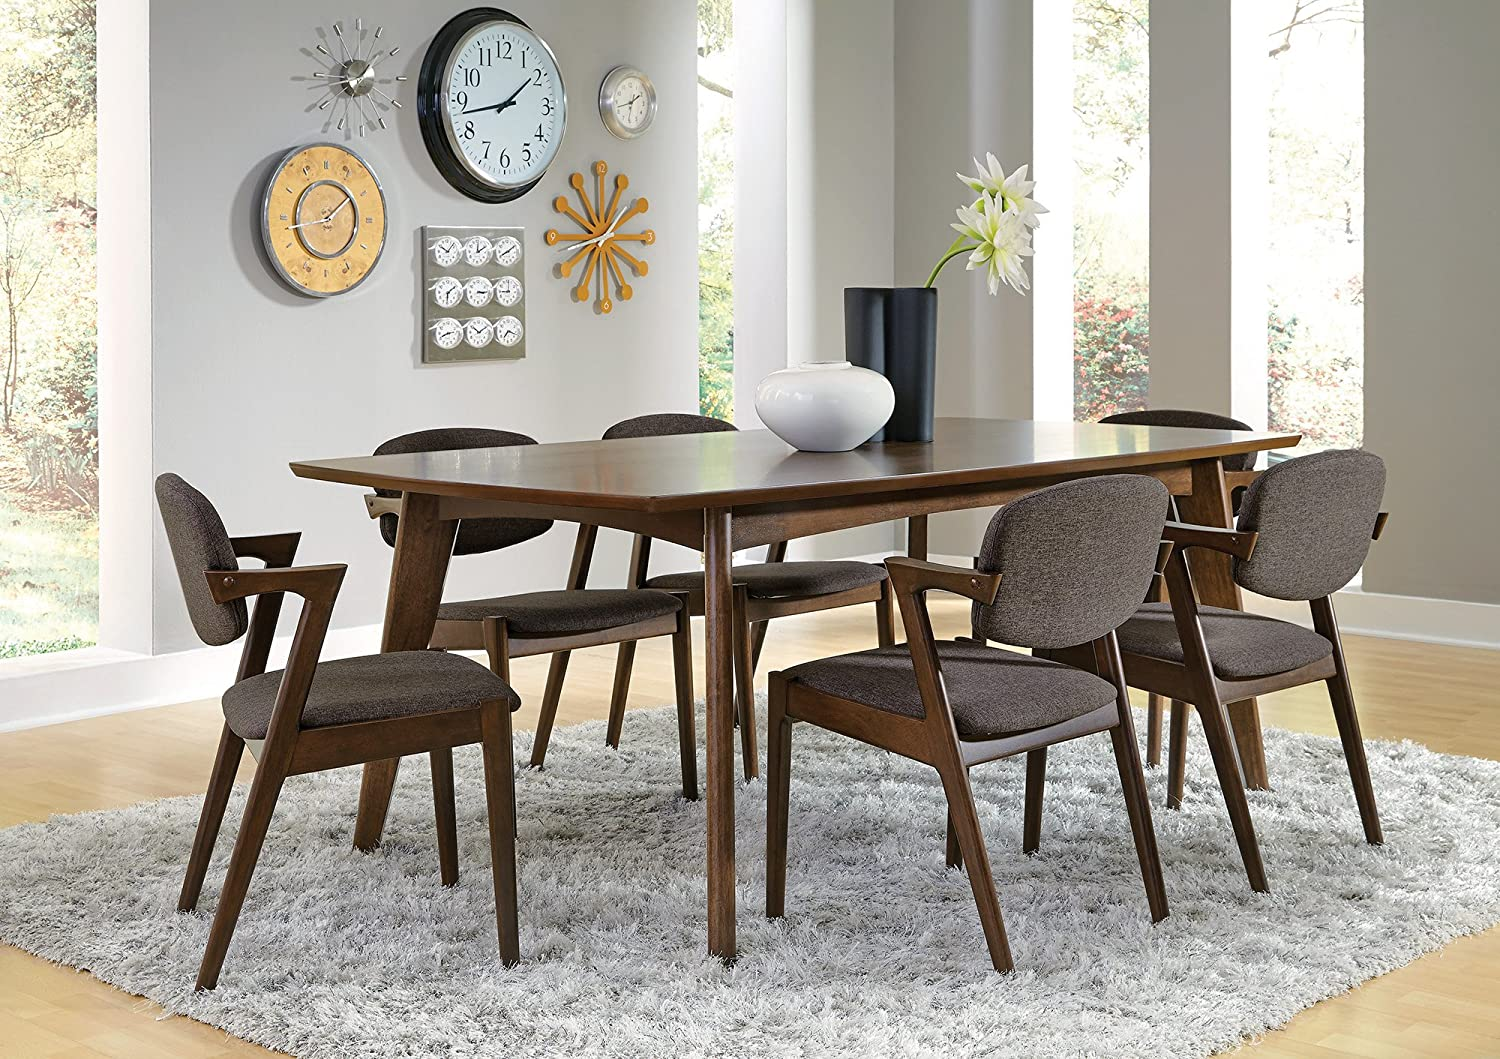 Amazon com benzara bm168070 mid century modern wooden dining table brown tables